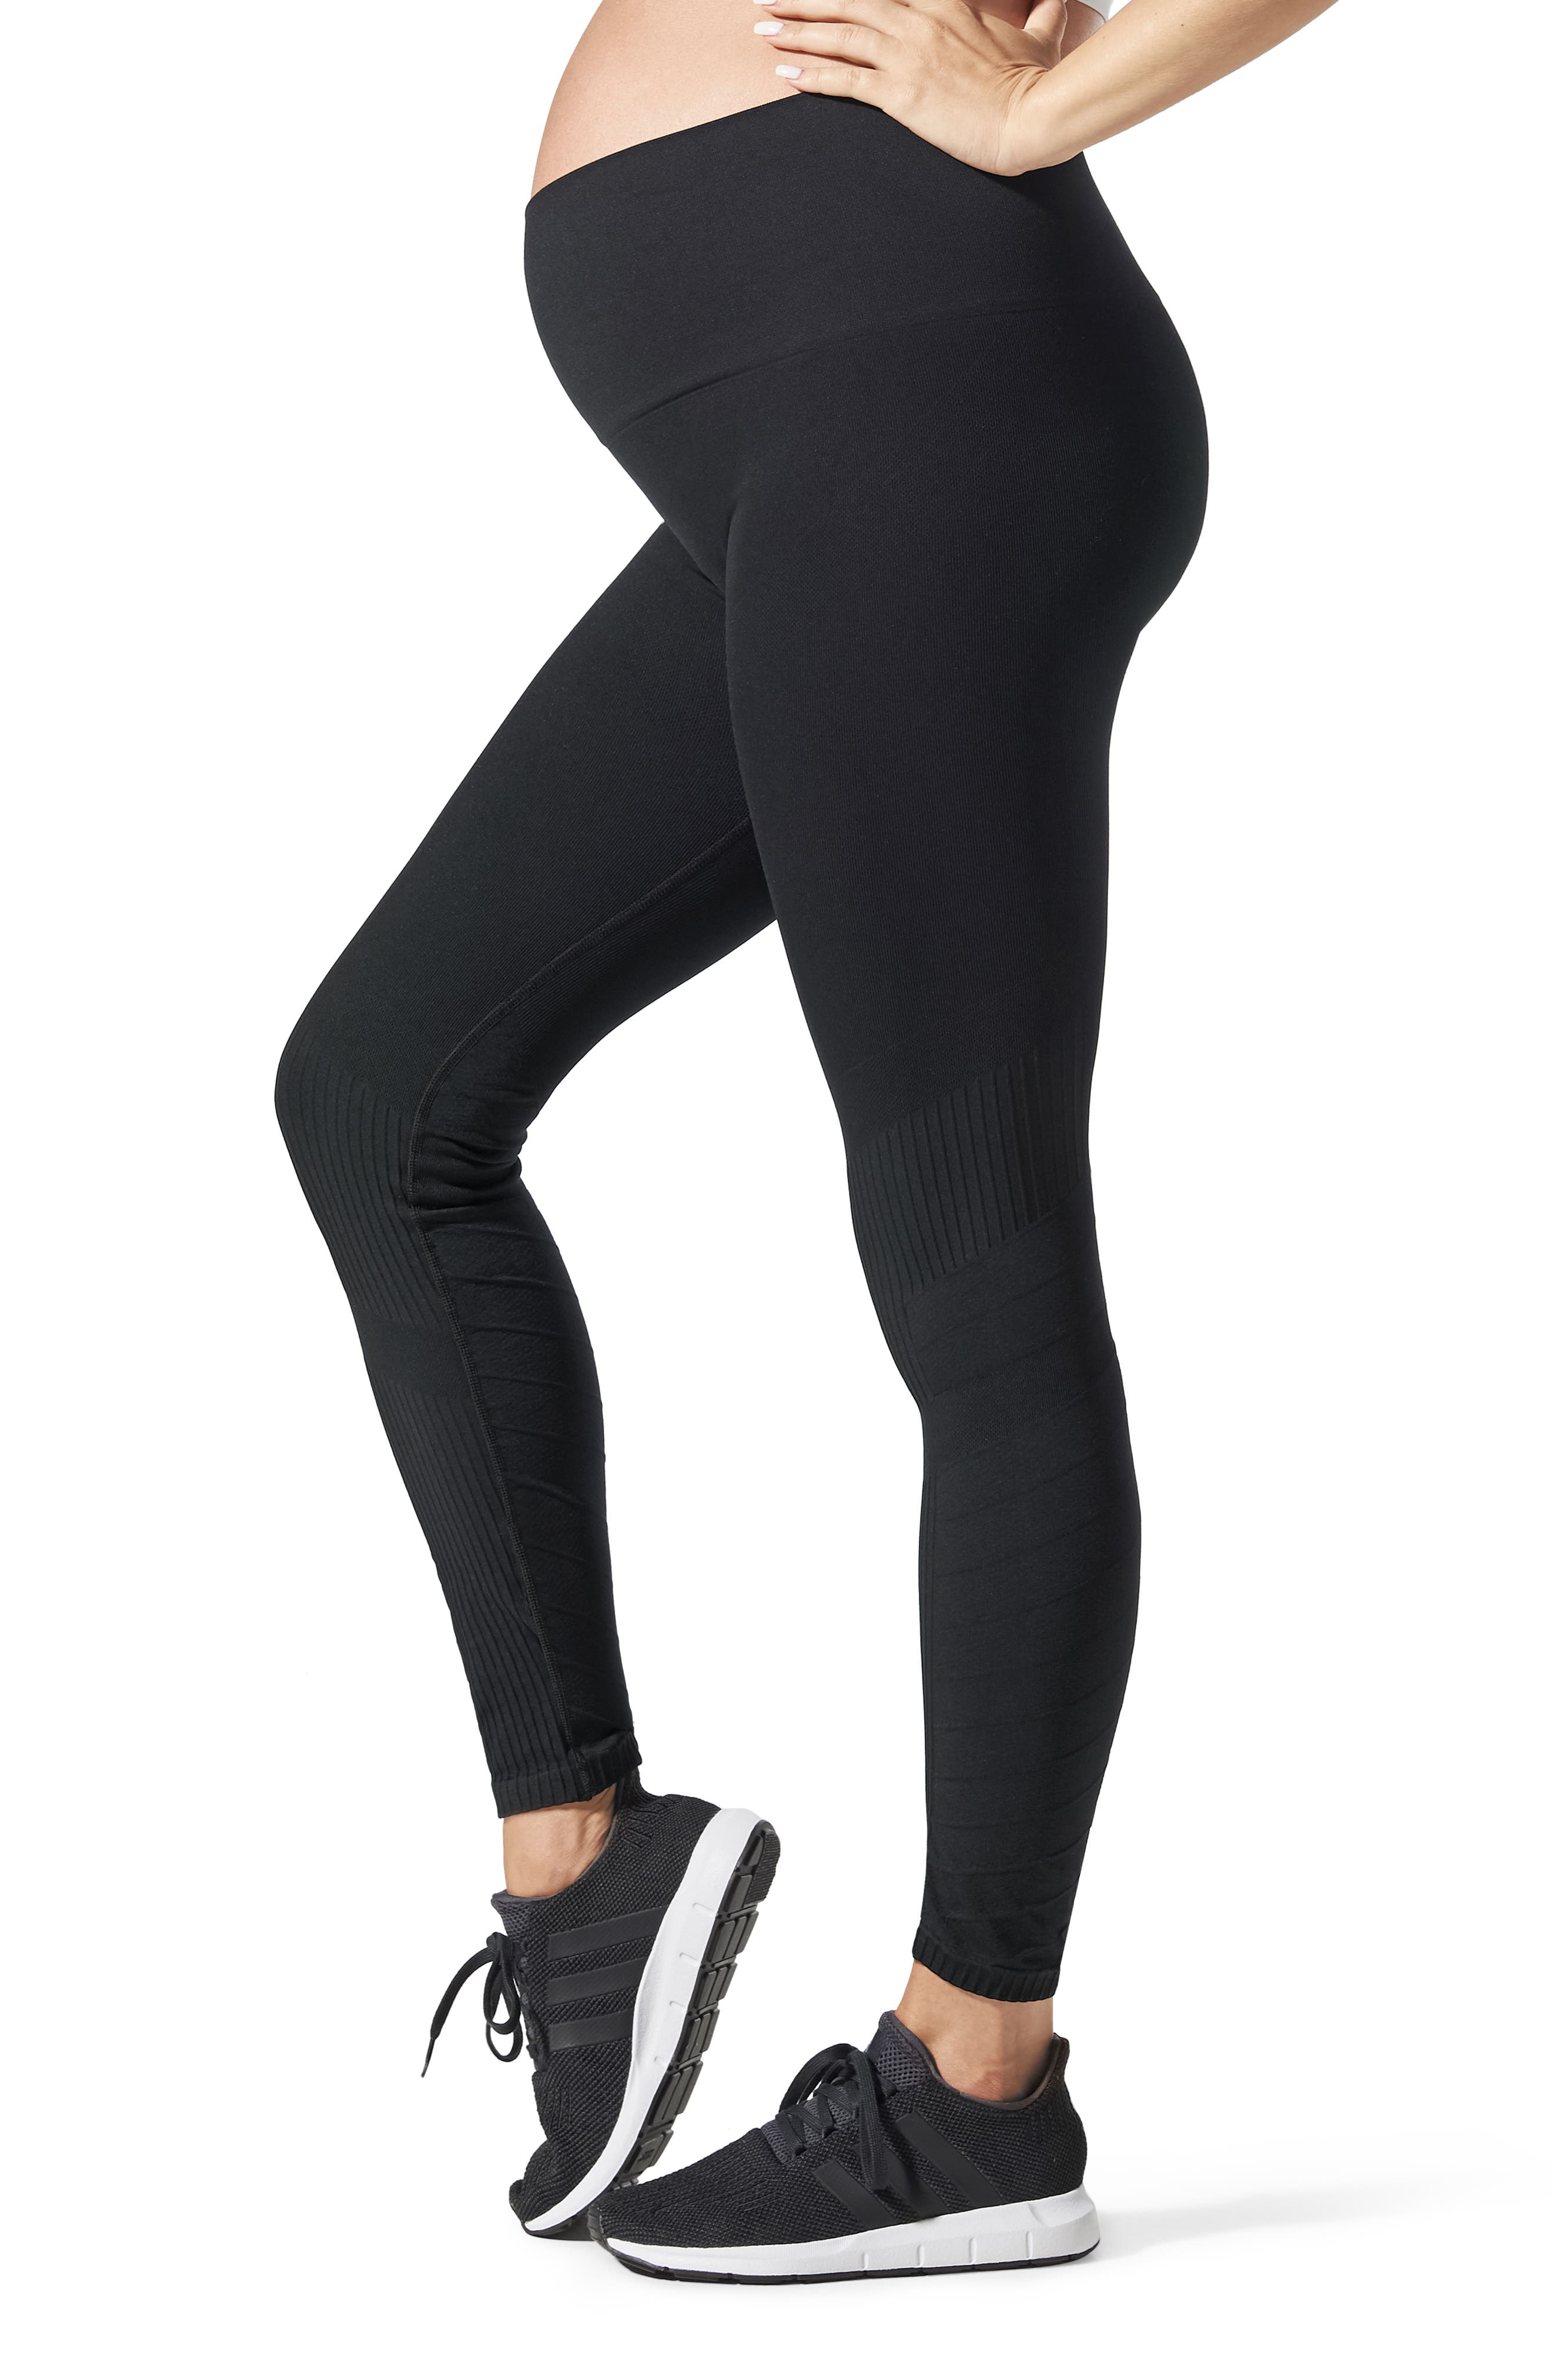 SportSupport<sup>®</sup> Hipster Contour Support Maternity/Postpartum Leggings,                         Main,                         color, BLACK